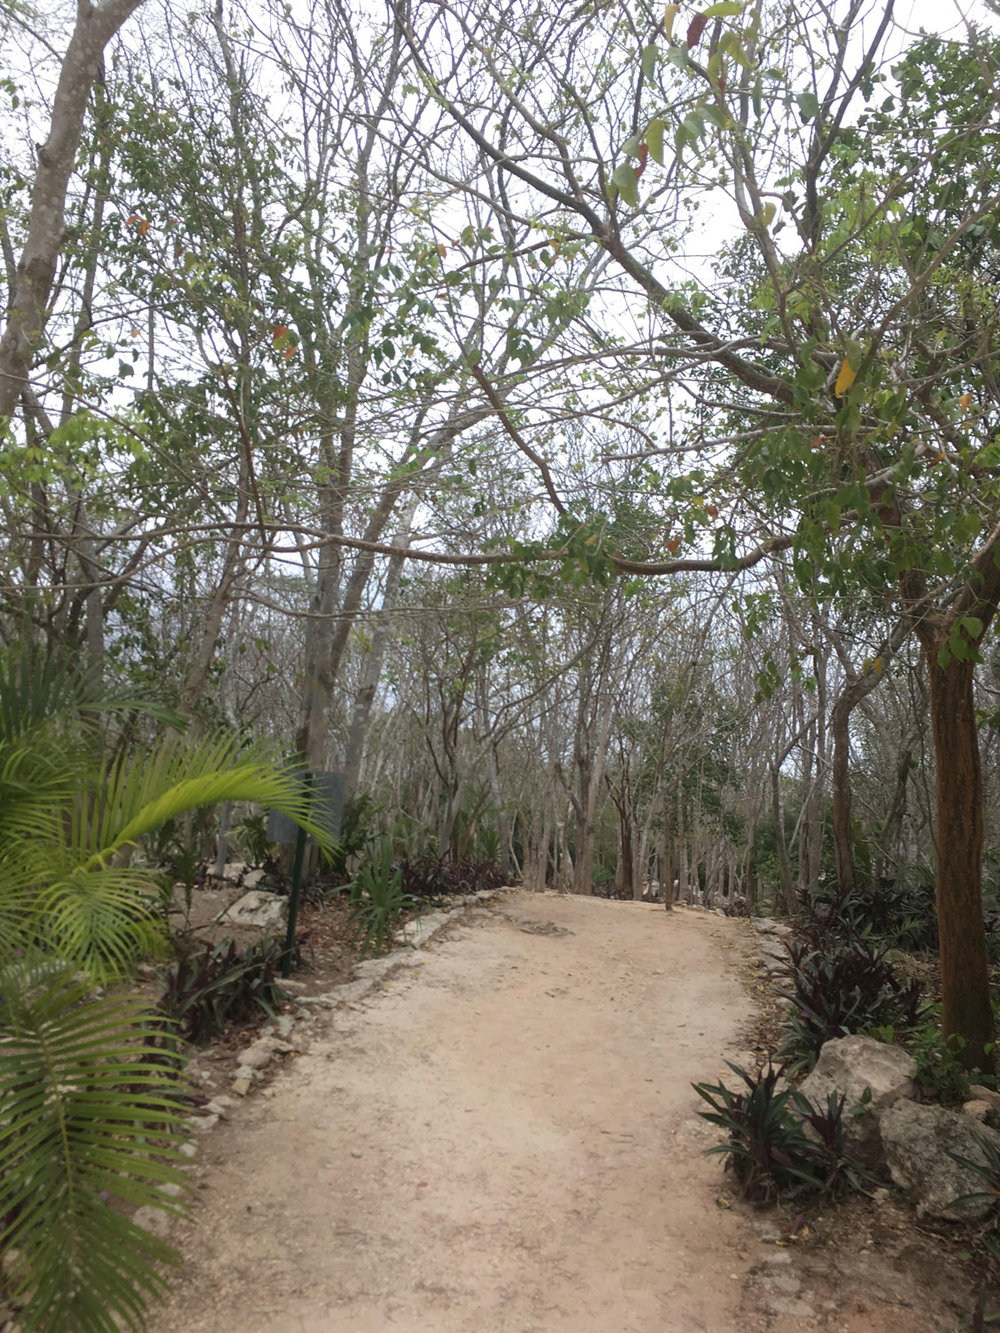 The path to the cenote. It is a 20-minute walk.